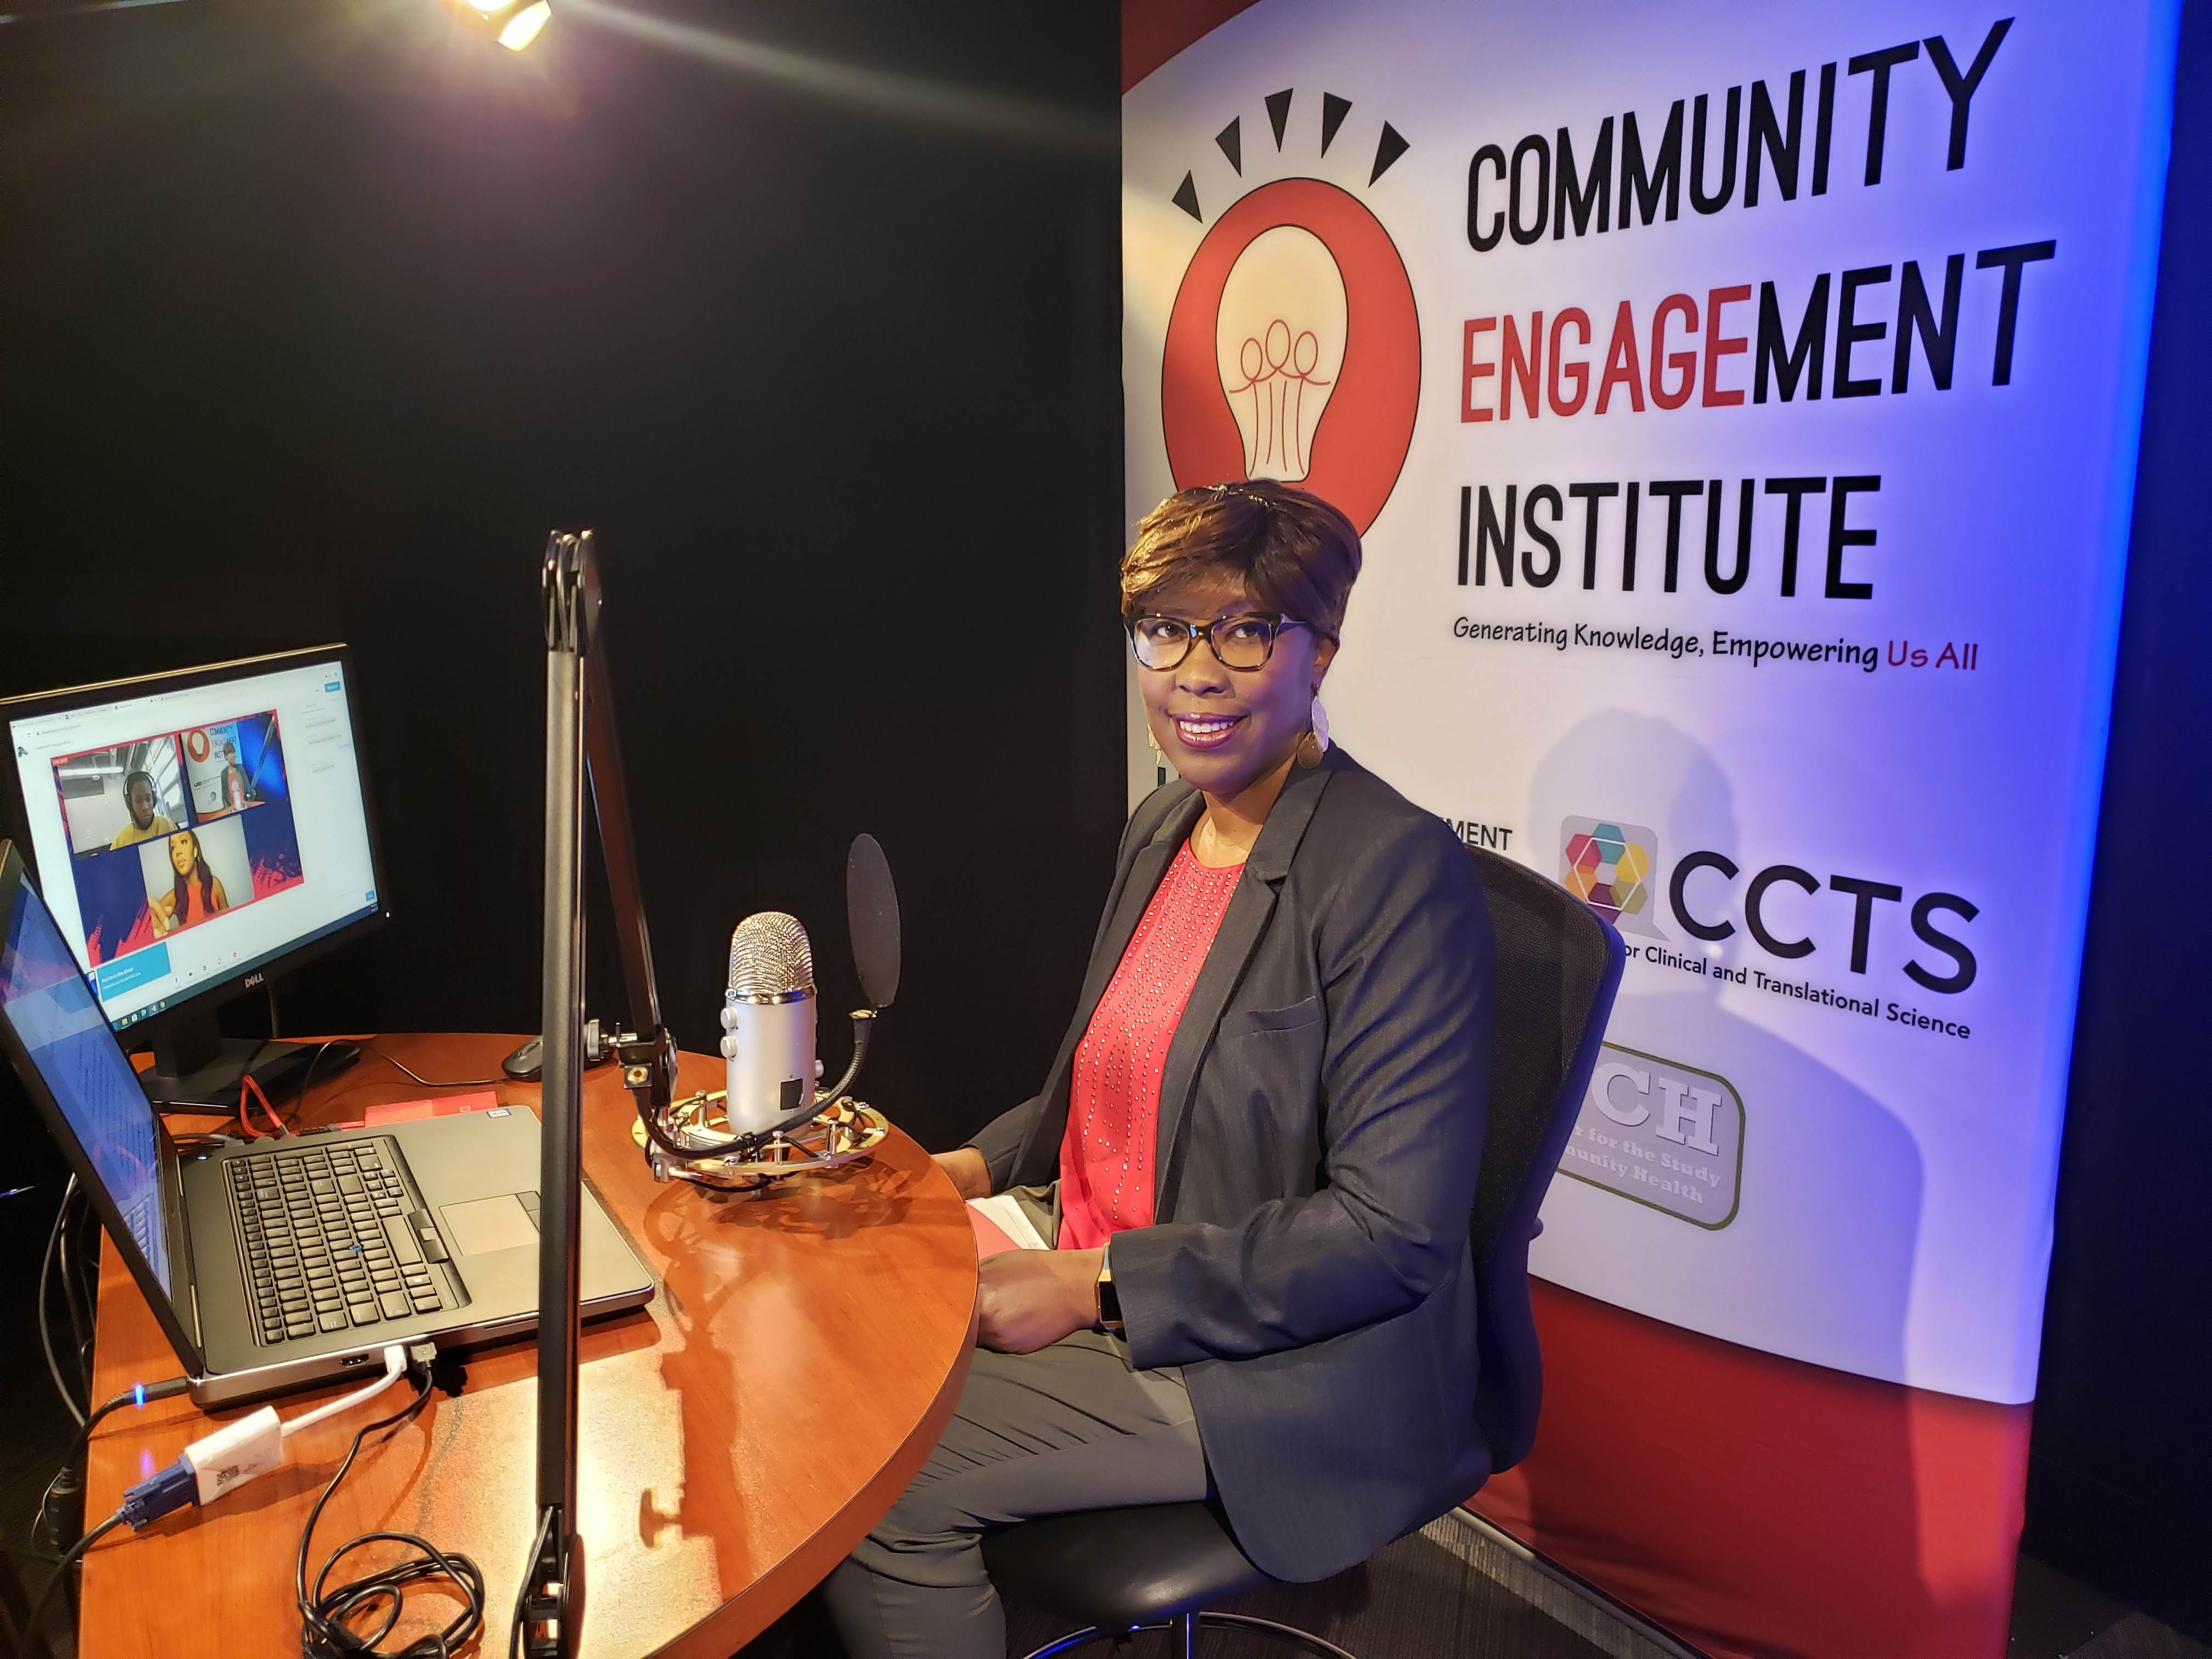 Community Engagement Institute (CEI) 2020 Wrap-Up